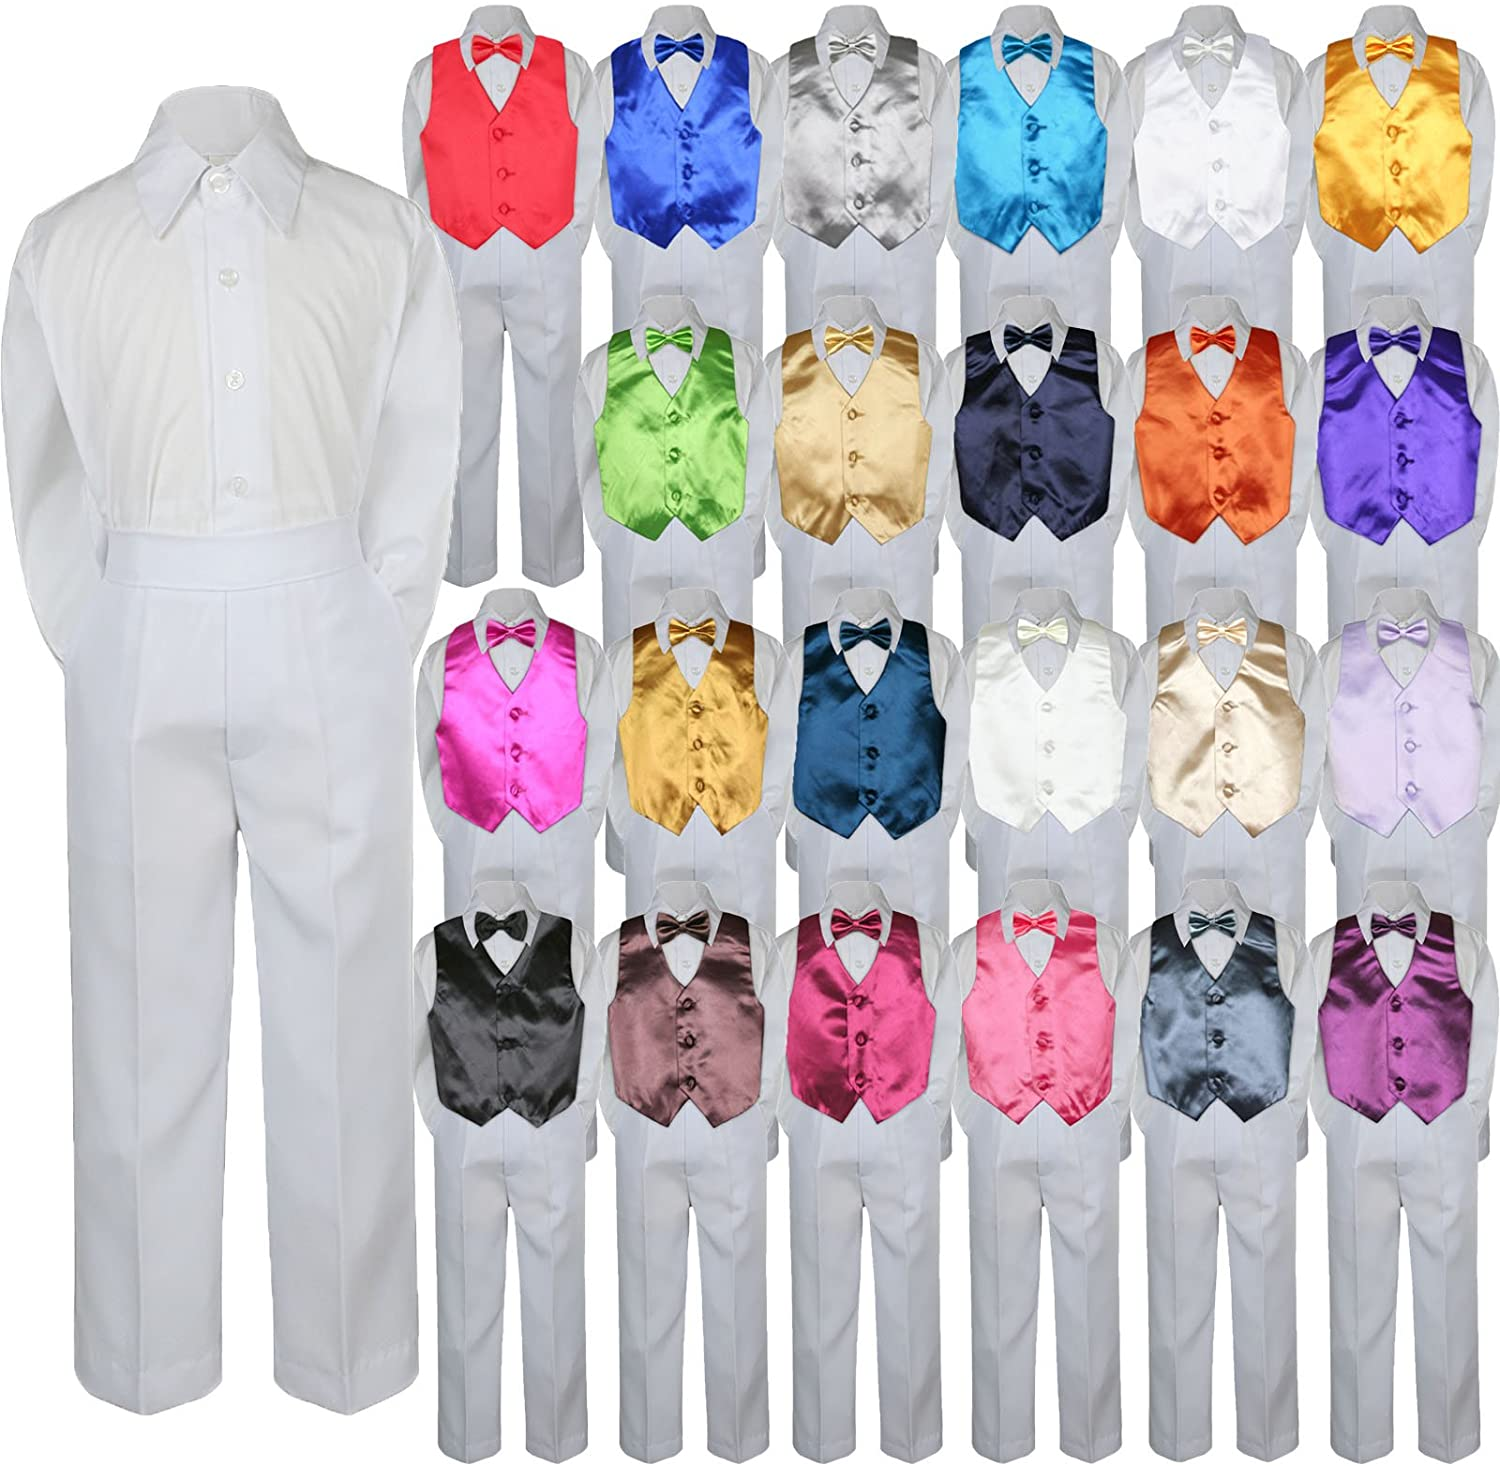 4pc Baby Toddler Kid Boy Formal Suit White Pants Shirt Vest Bow tie Set 5-7